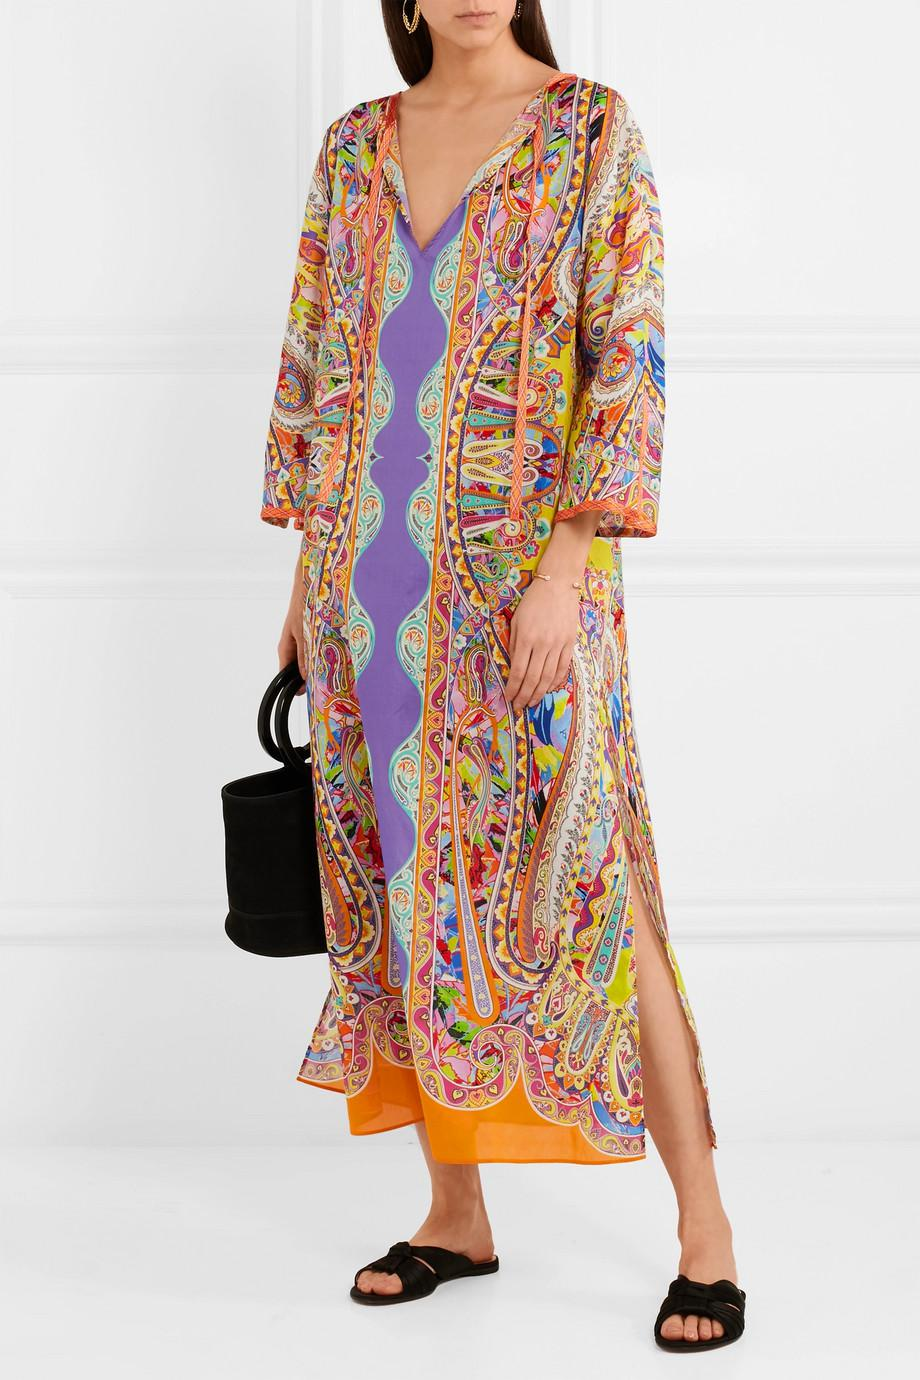 Nisyros Printed Cotton Kaftan - Yellow Etro Sale Low Shipping Cheap Low Cost Outlet Manchester Sale Hot Sale Clearance Original MR0fWAnqH